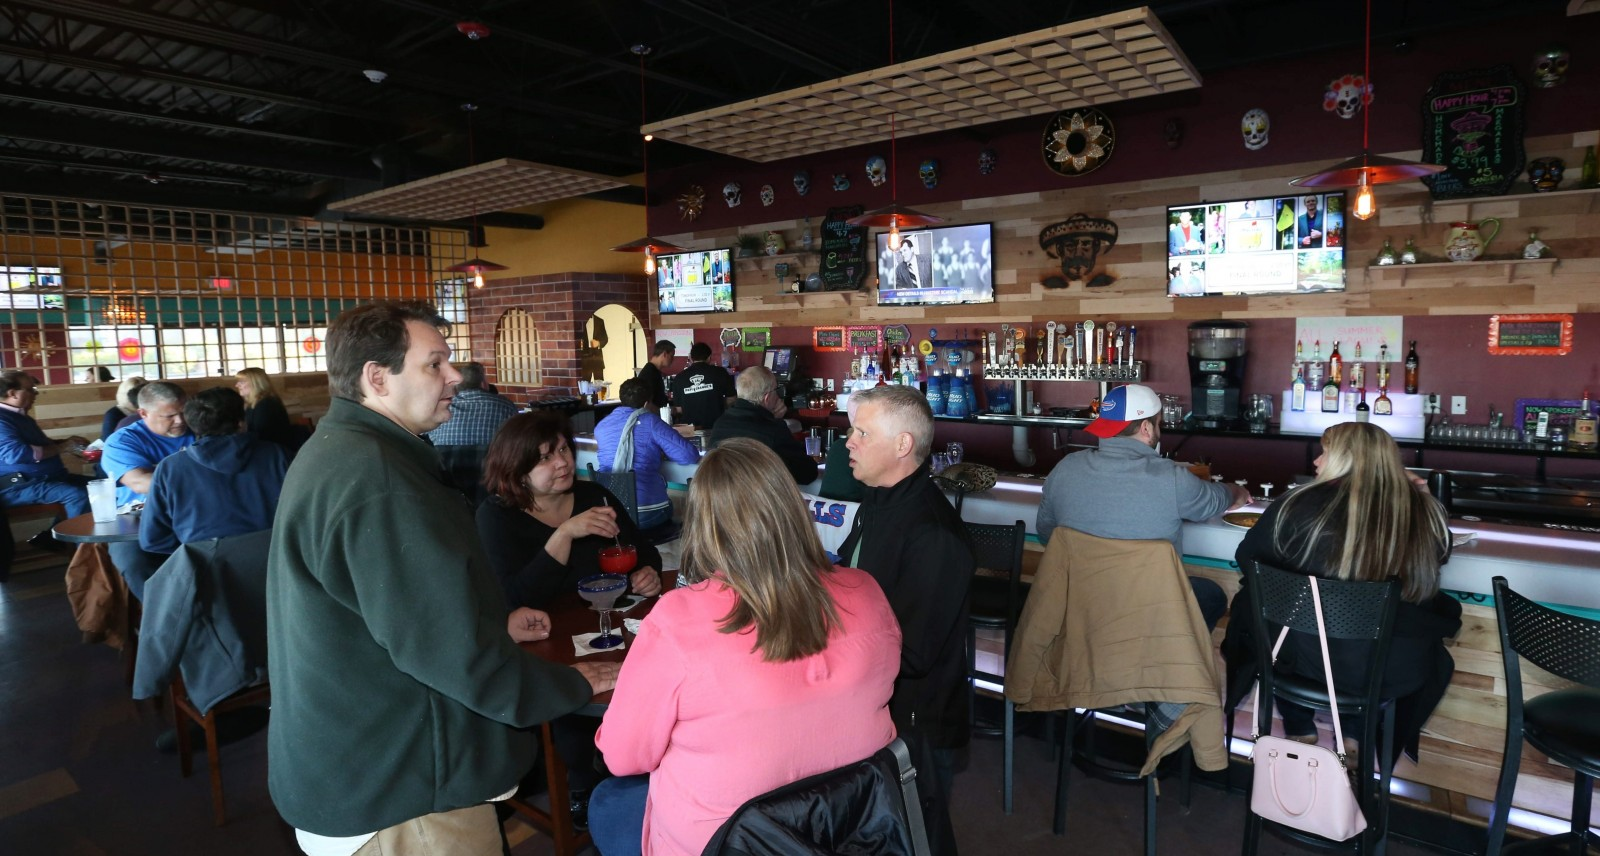 Papi Grande's Mexican Restaurant & Cantina opened recently at 4276 Maple Road in Amherst next to the AMC Maple Ridge 8 theater in space formerly occupied by The U. (Sharon Cantillon/Buffalo News)